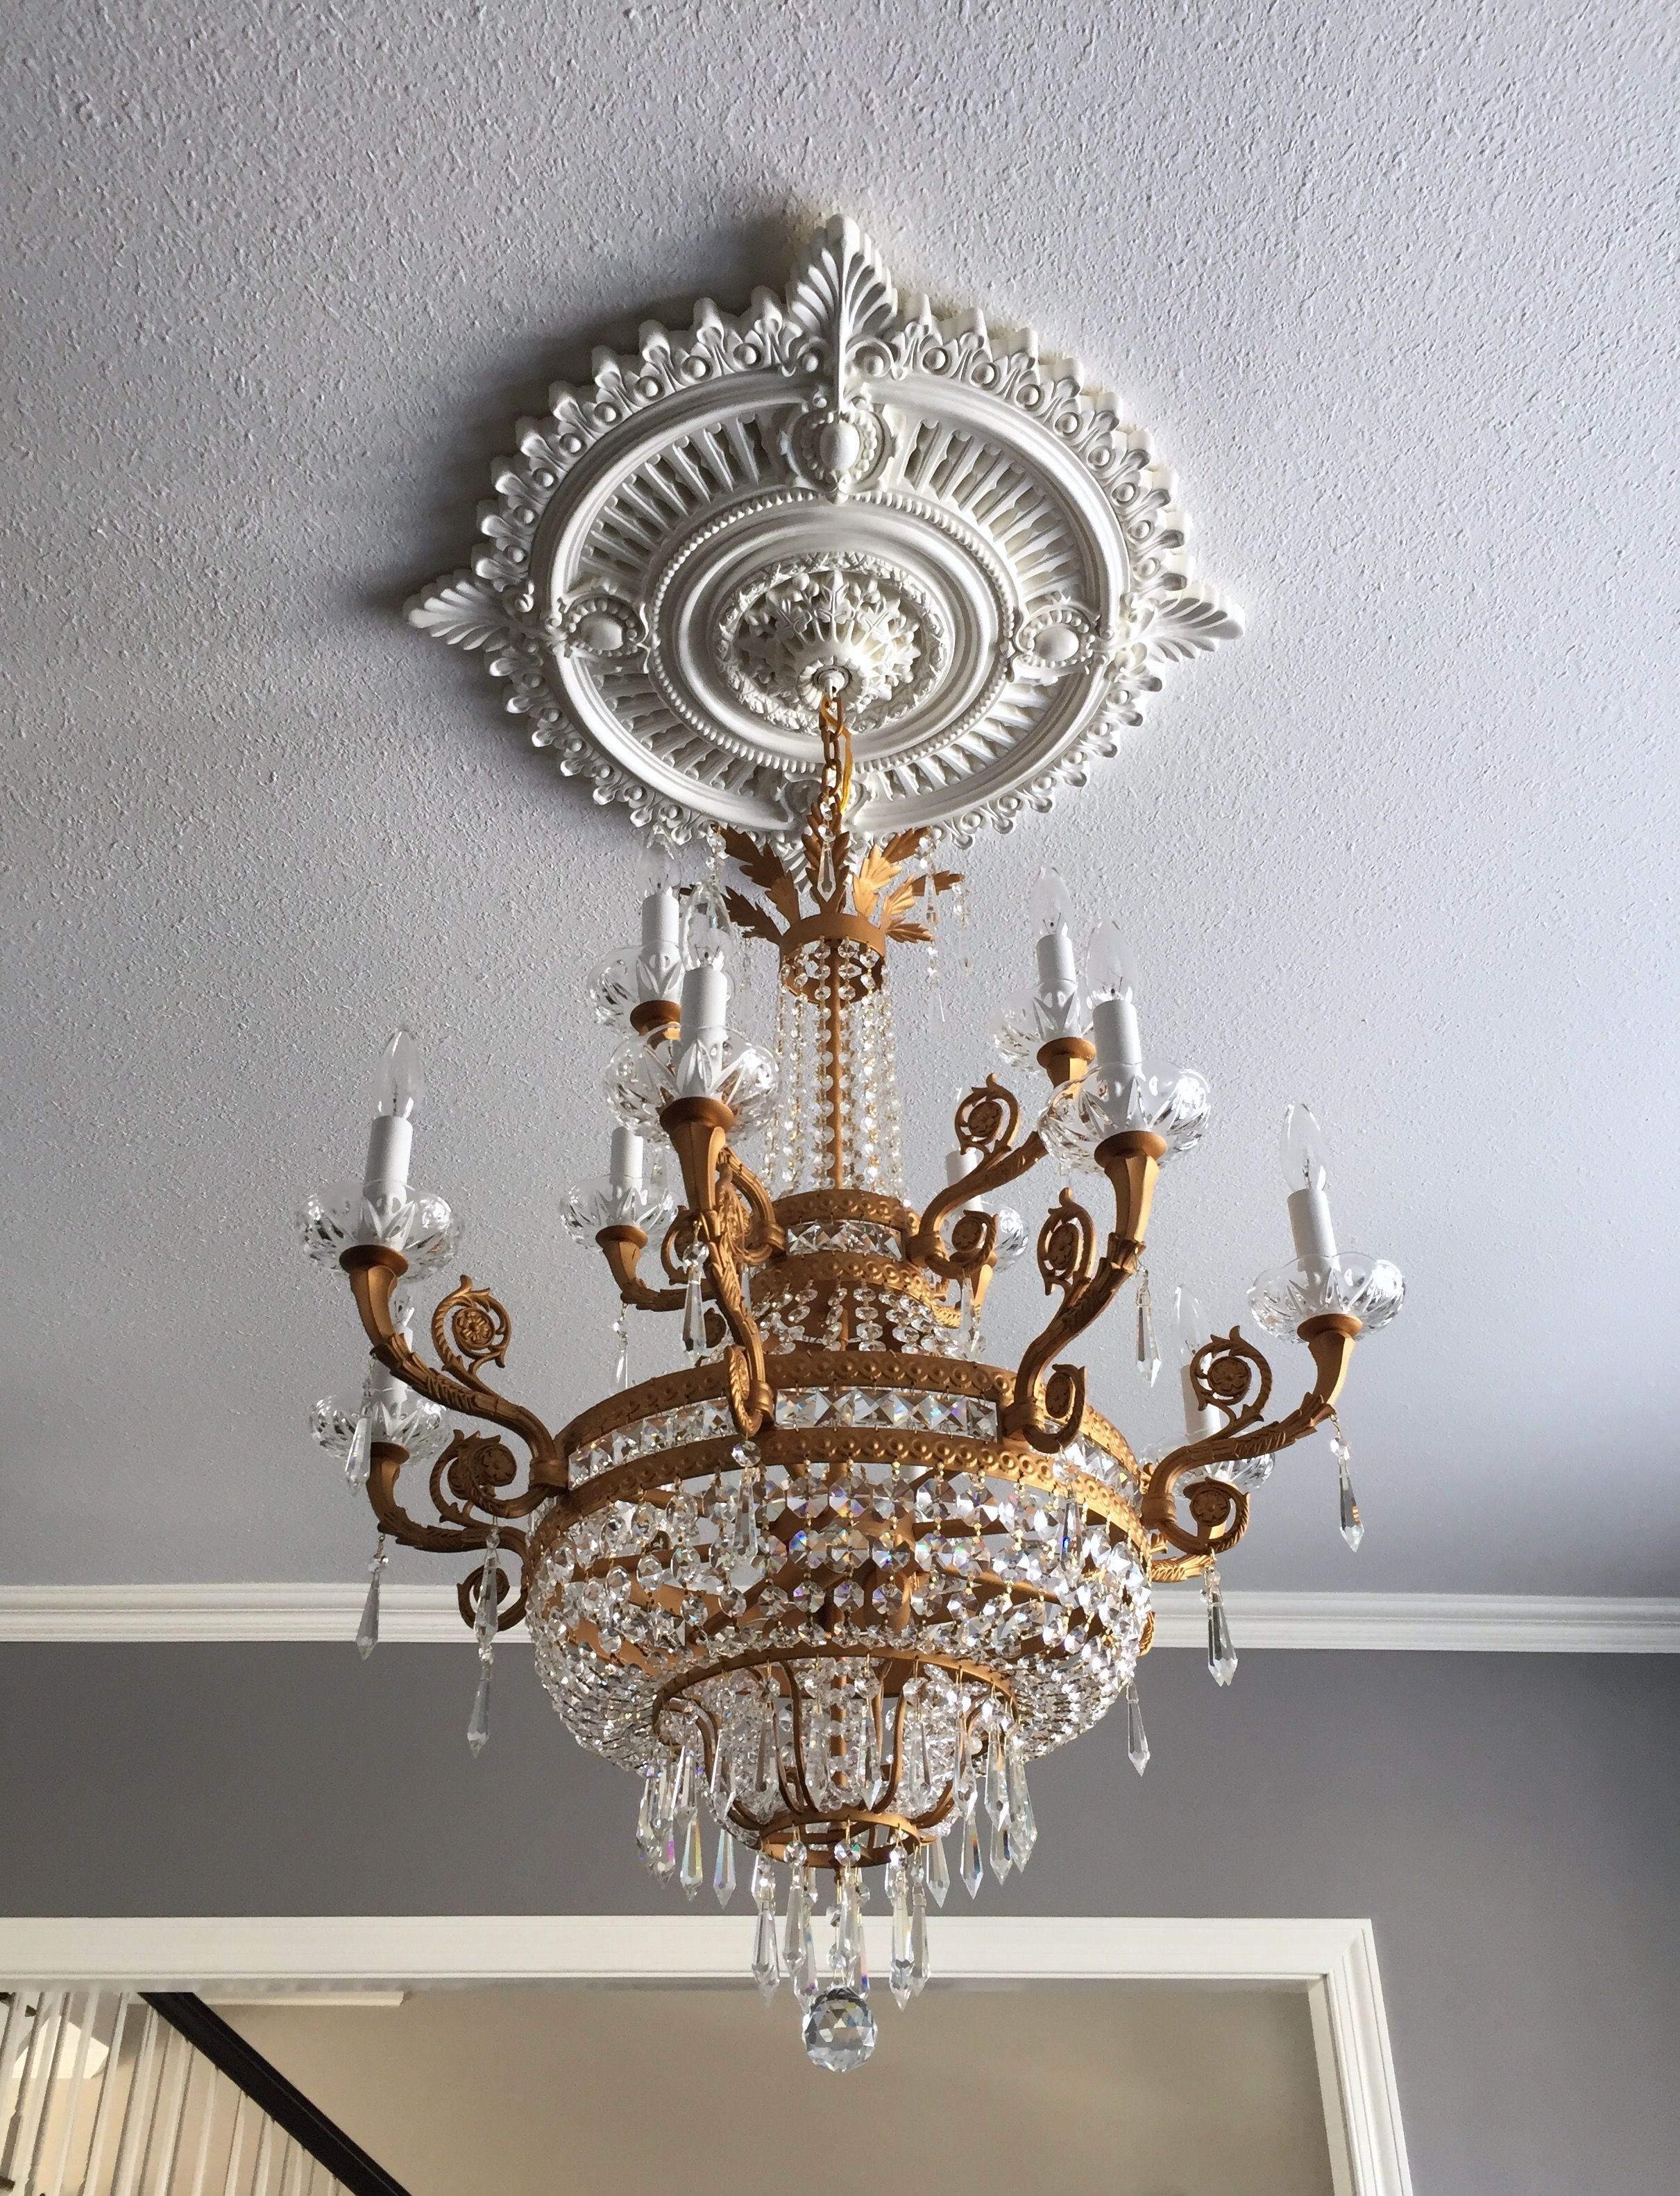 chandeliers how with fixture chandelier design for medallion light stylish regarding pertaining a to medallions center amazing ceiling